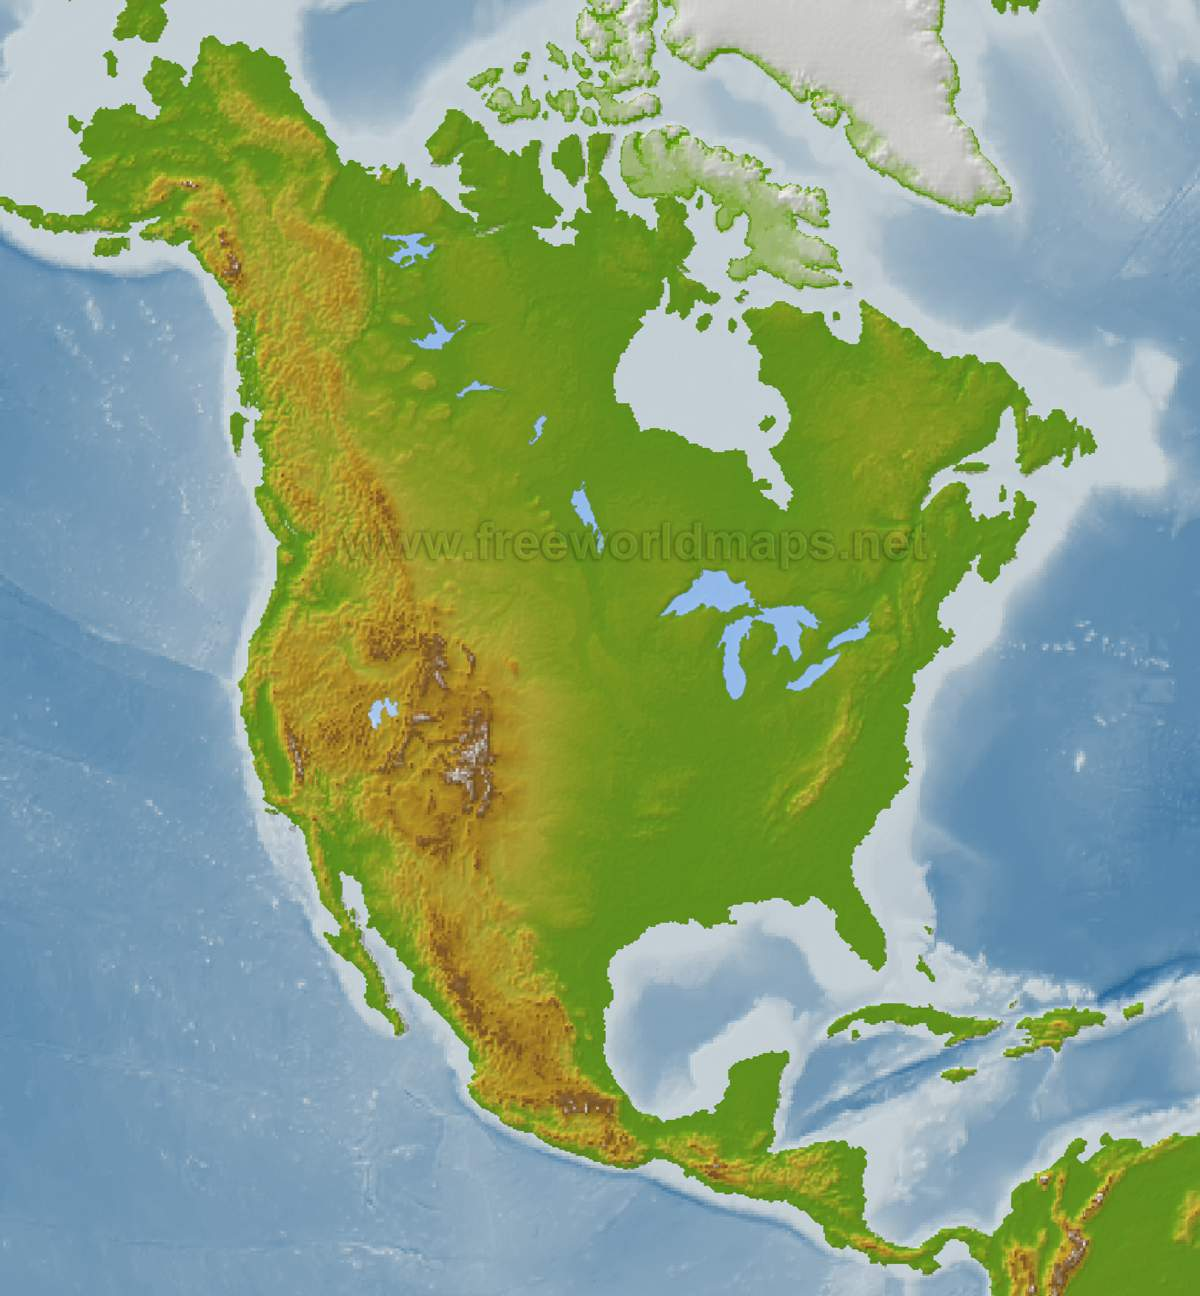 Free North America Map.Download Free North America Maps